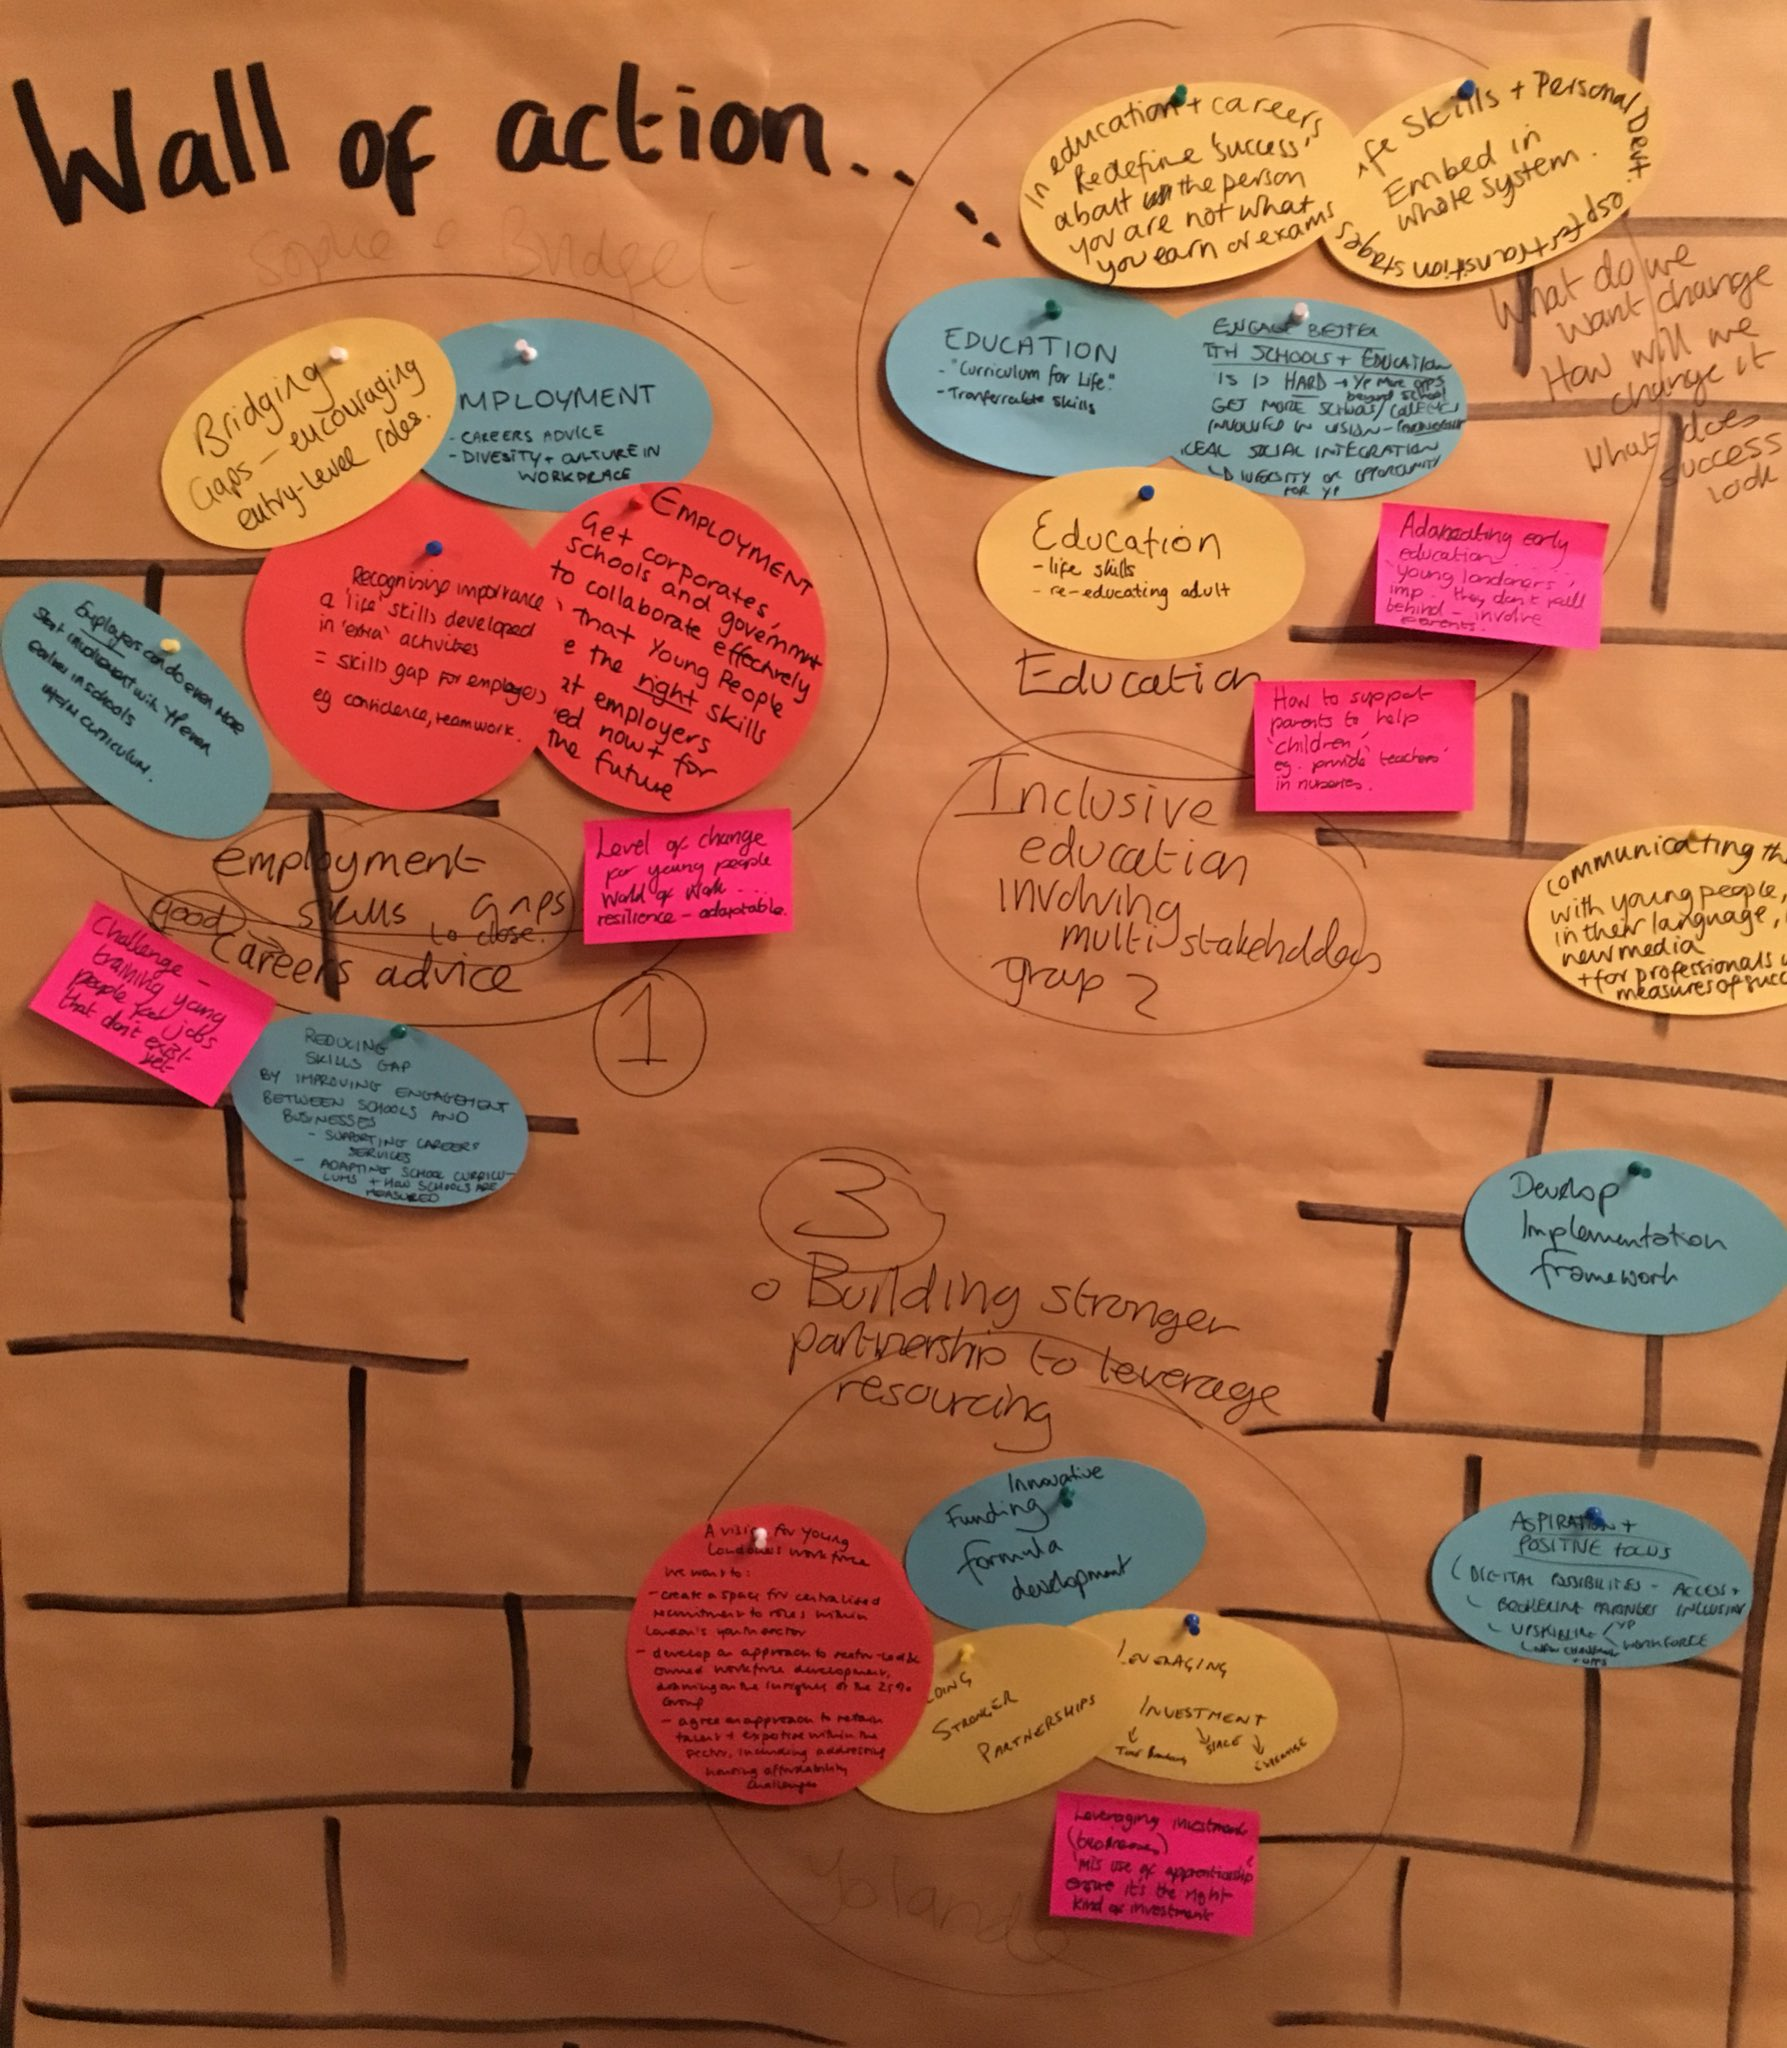 Wall of action at Vision event